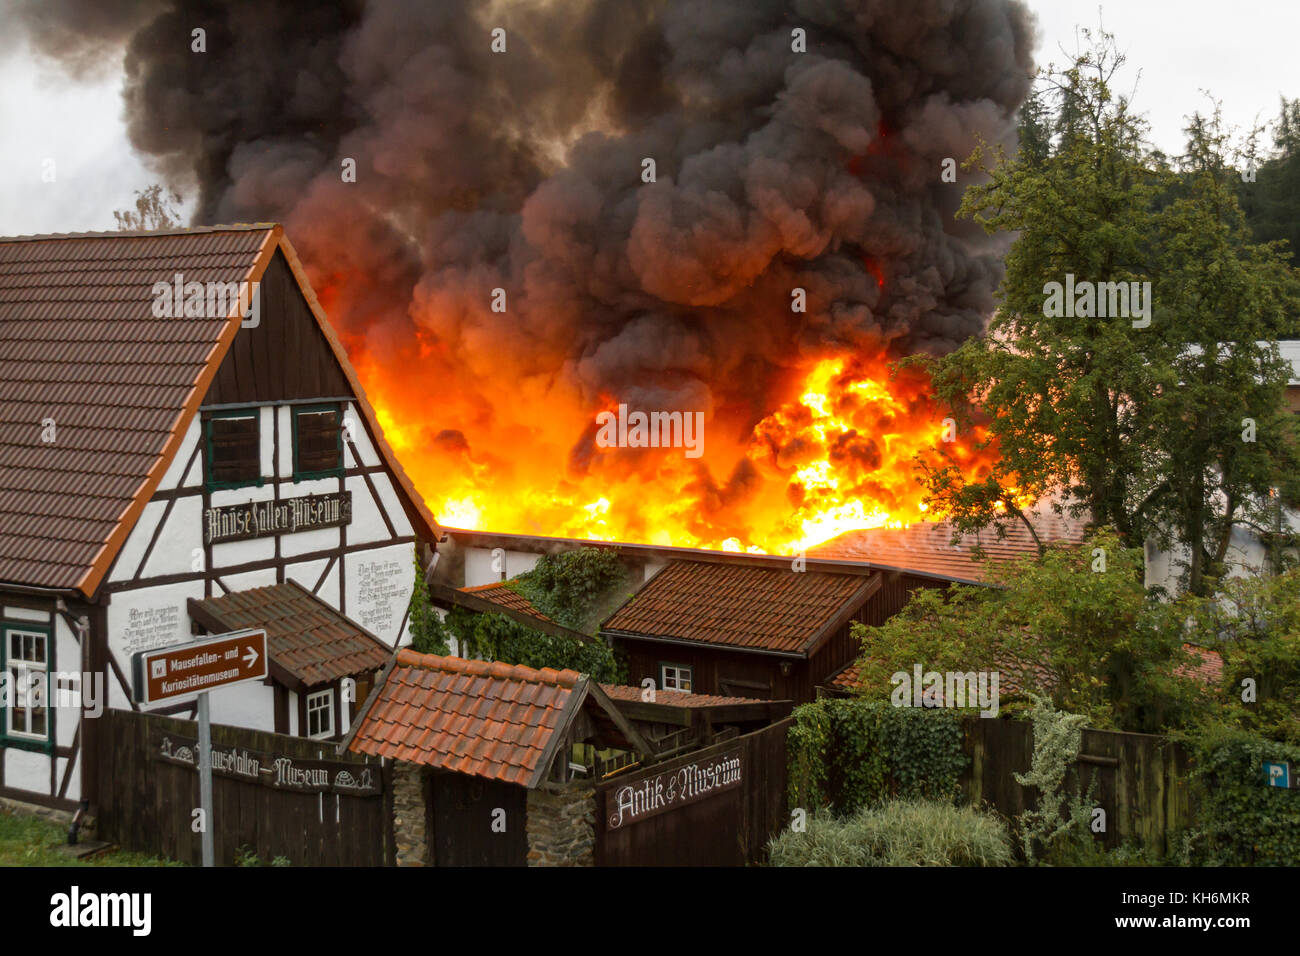 Brand Kaufhalle Guentersberge - Stock Image